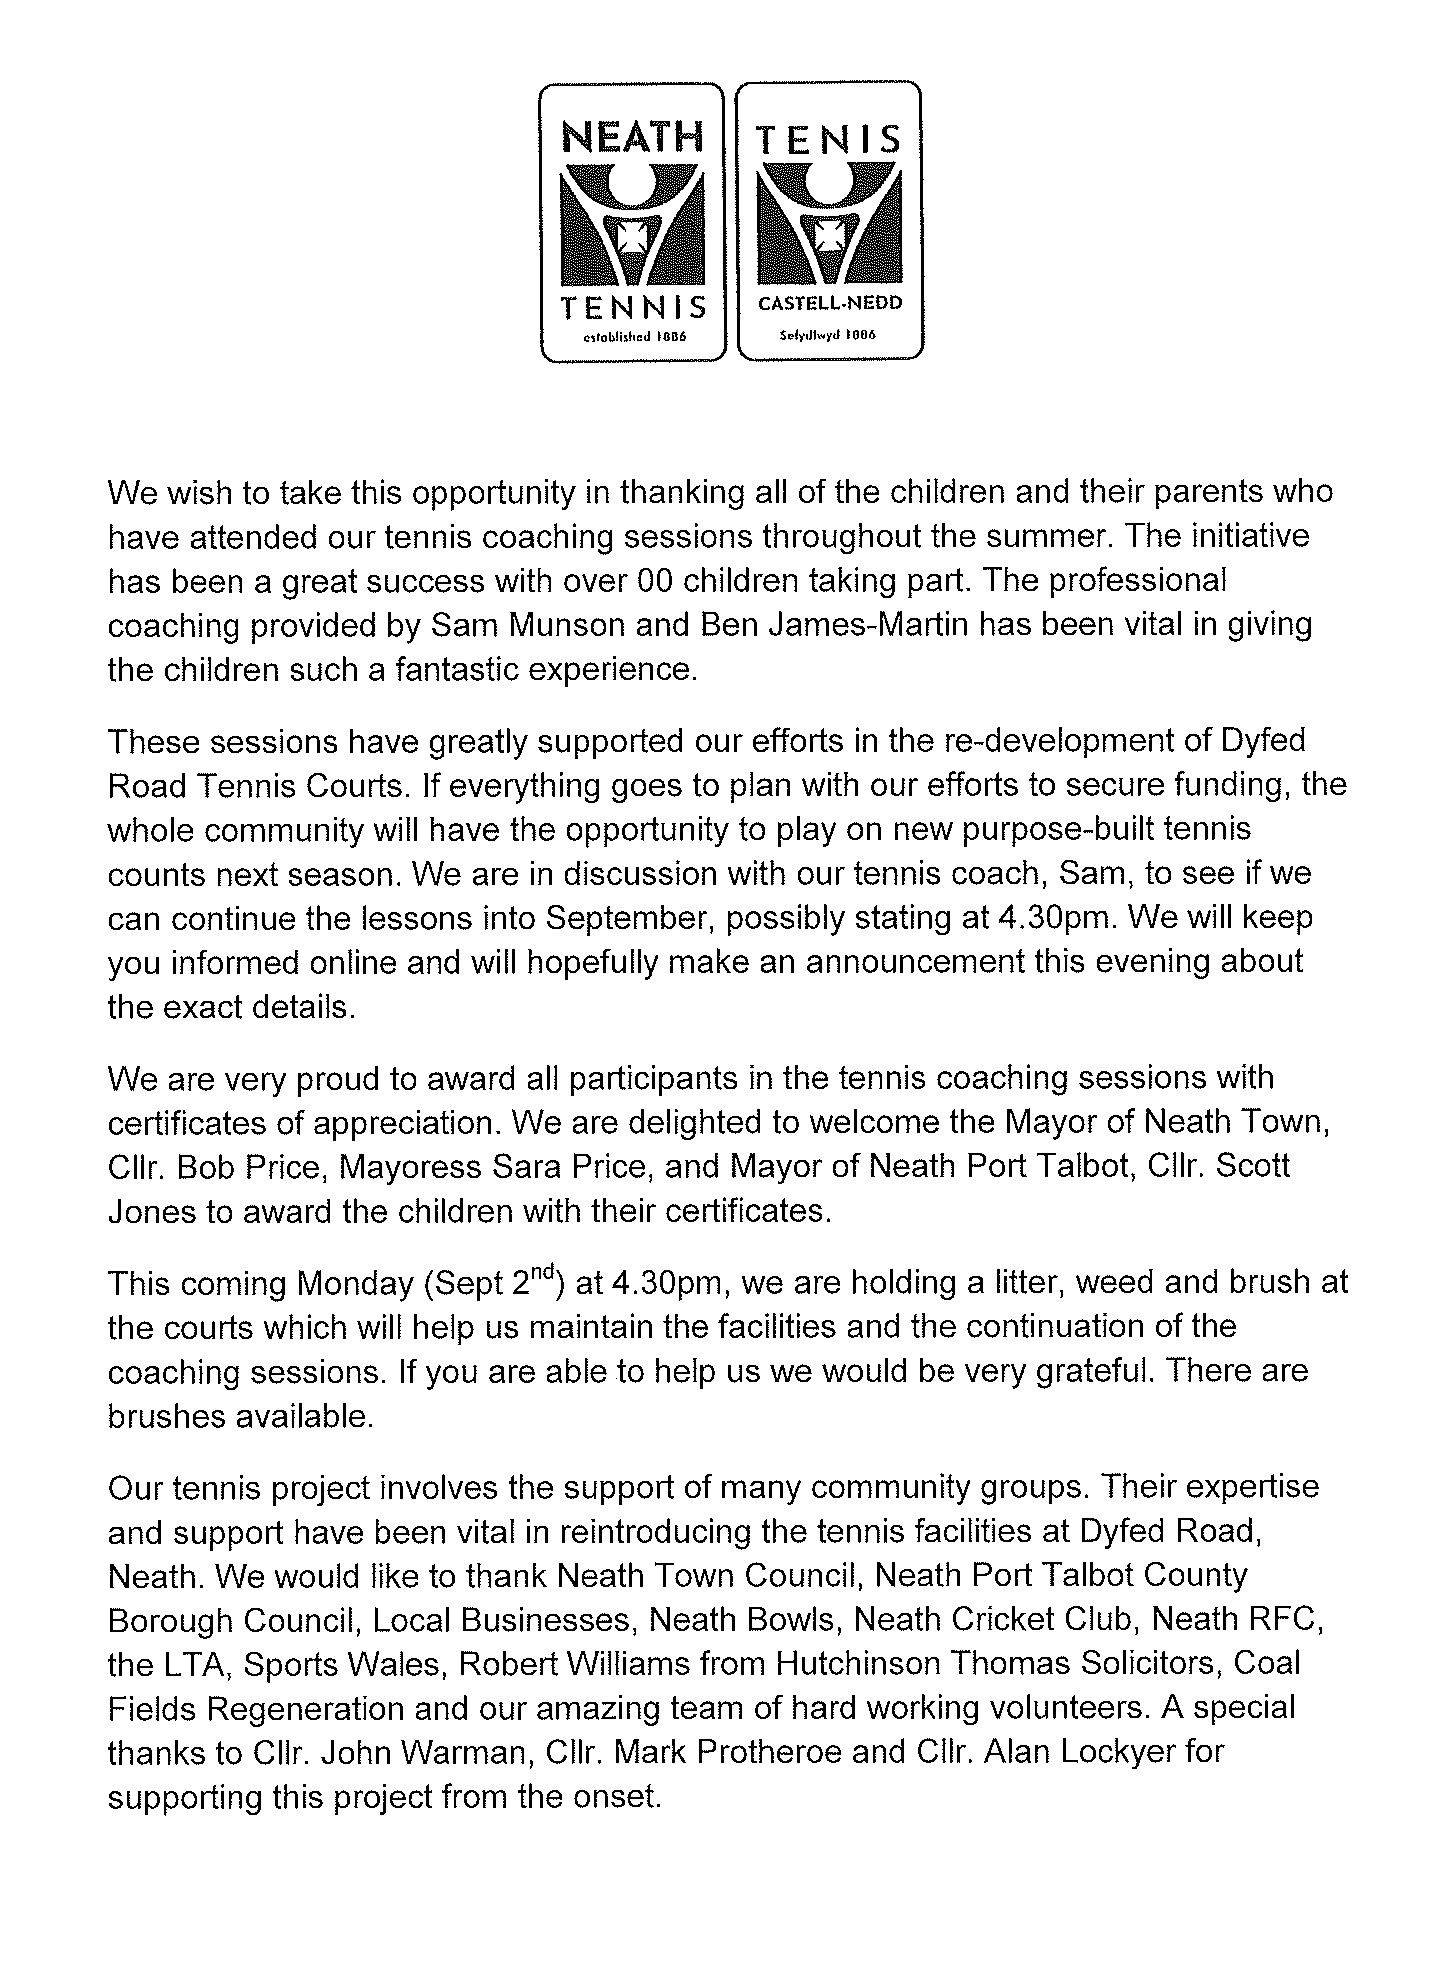 Neath Tennis press release